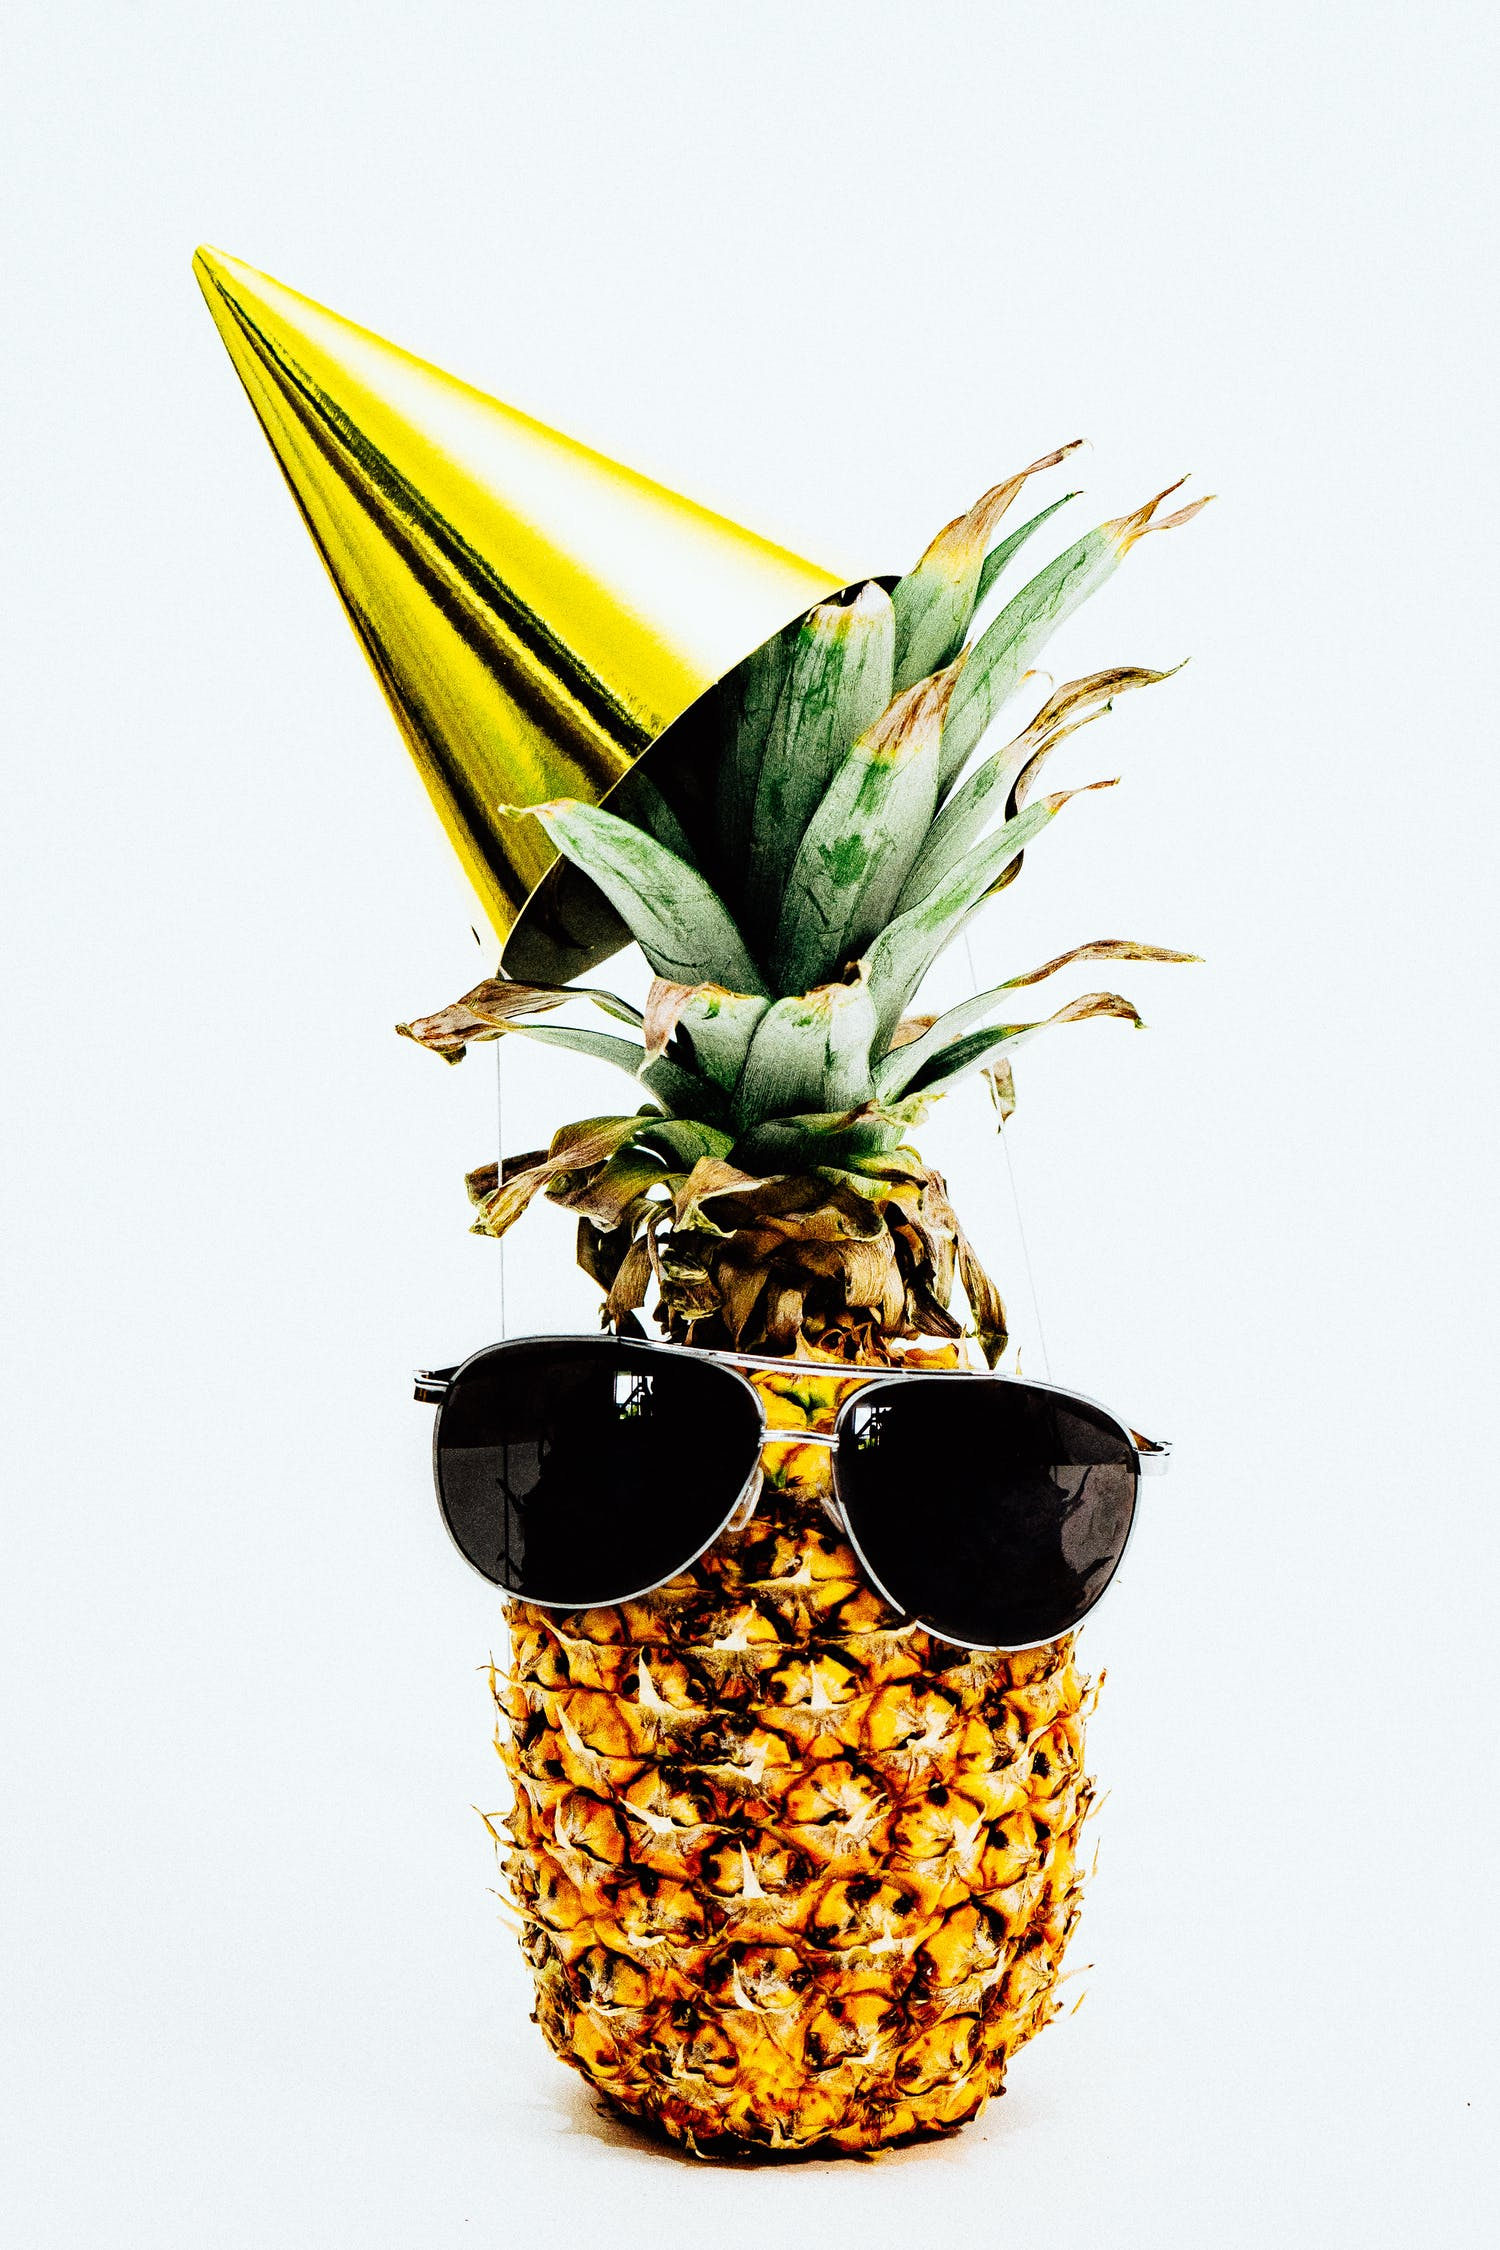 Photo Of Pineapple Wearing Black Aviator Style Sunglasses And Party Hat